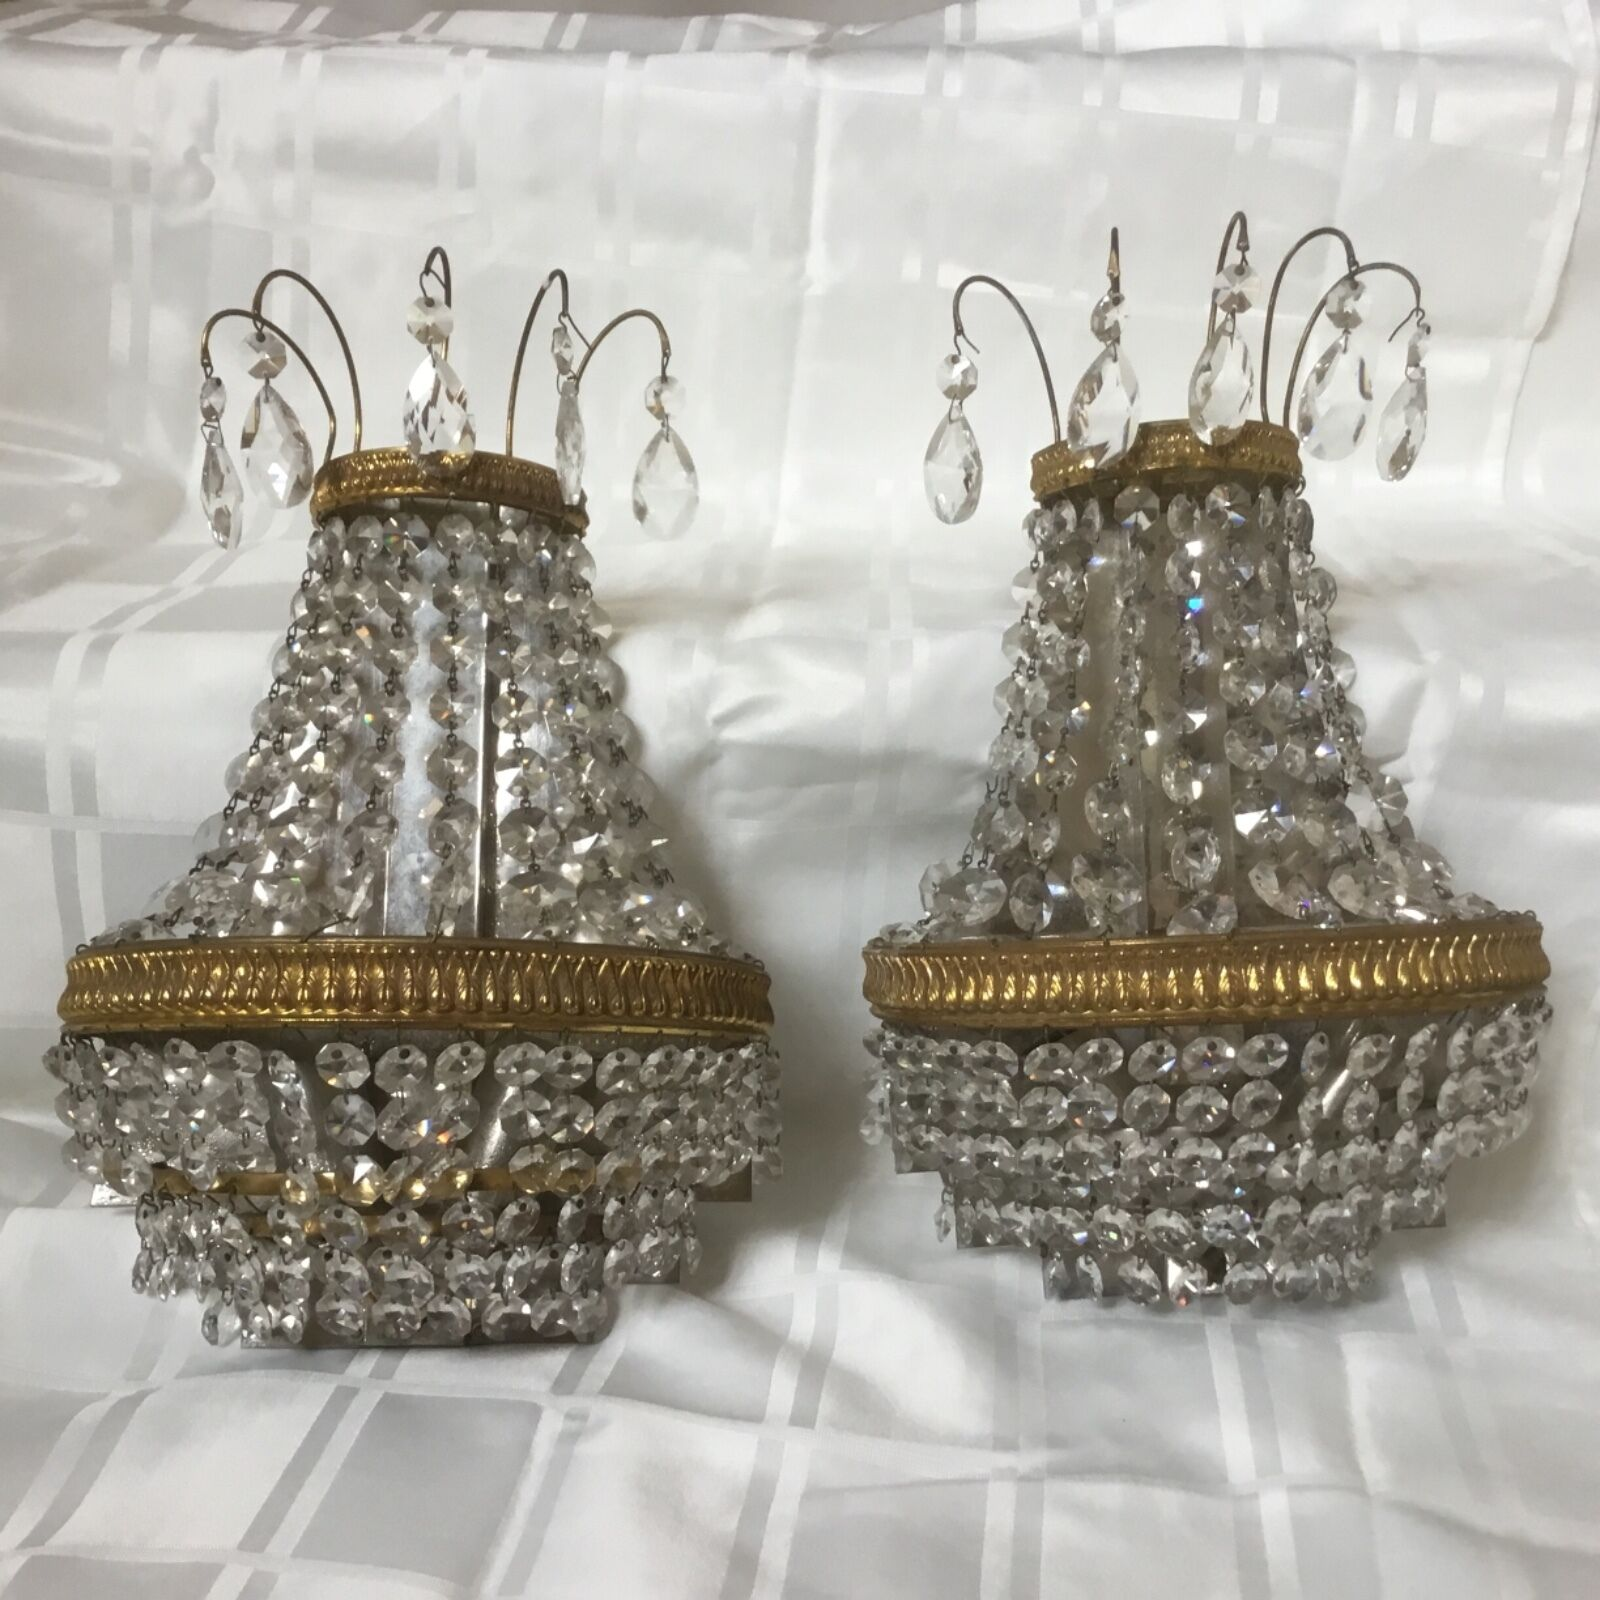 Antique Bronze Crystal Beaded French Empire Chandelier Wall Sconces Pair Germany